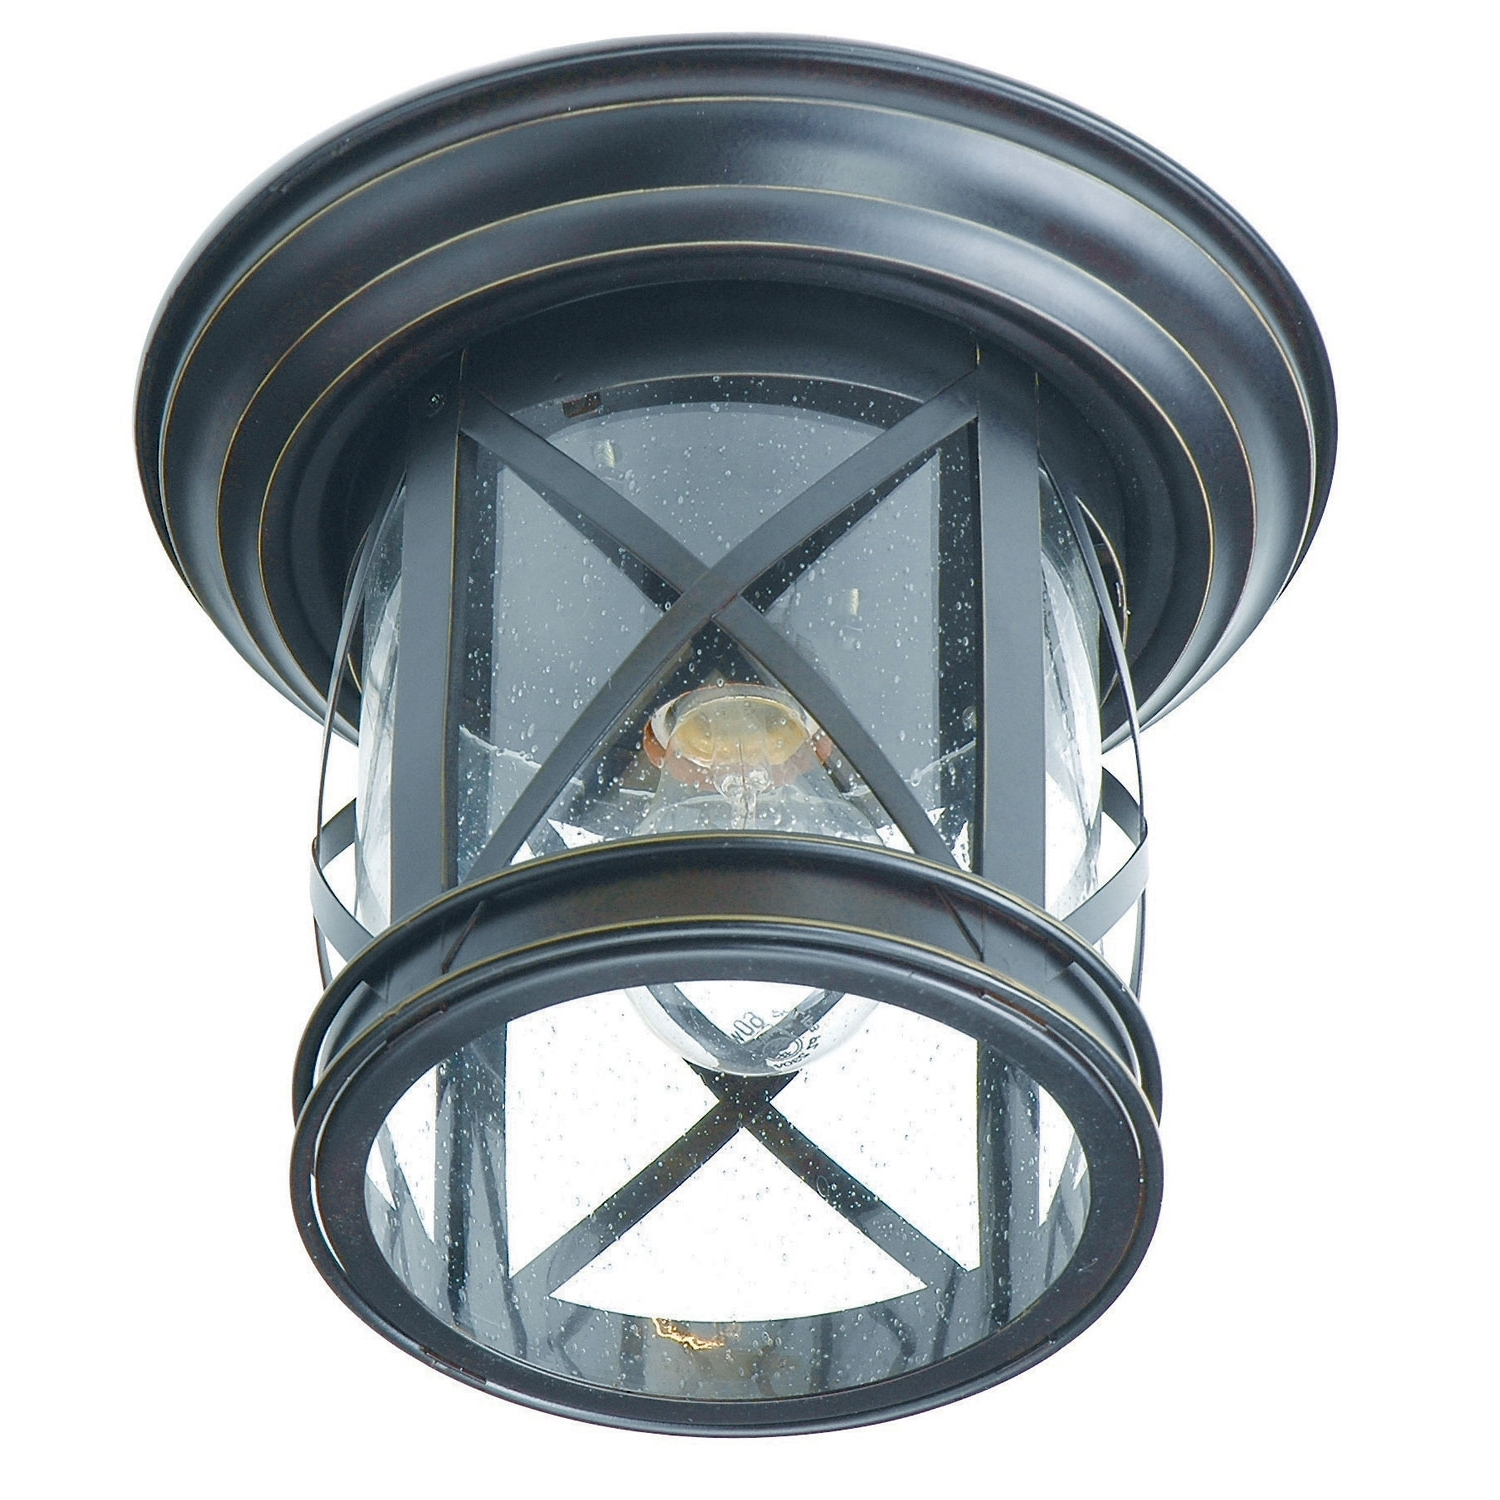 Bellacor In Favorite Outdoor Wall Mounted Accent Lighting (View 1 of 20)